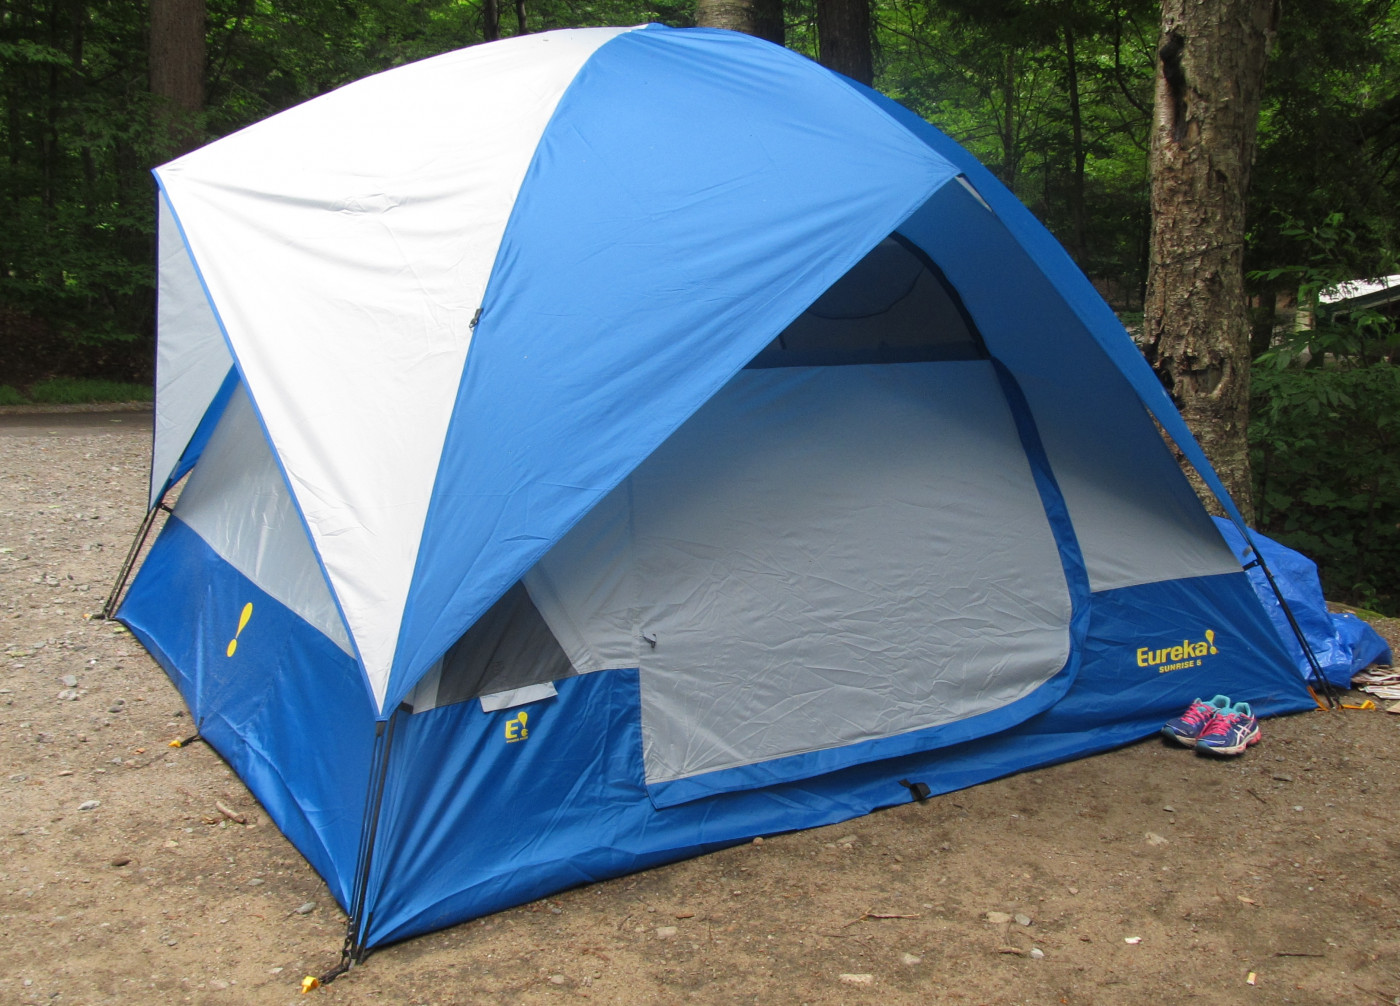 My new tent!